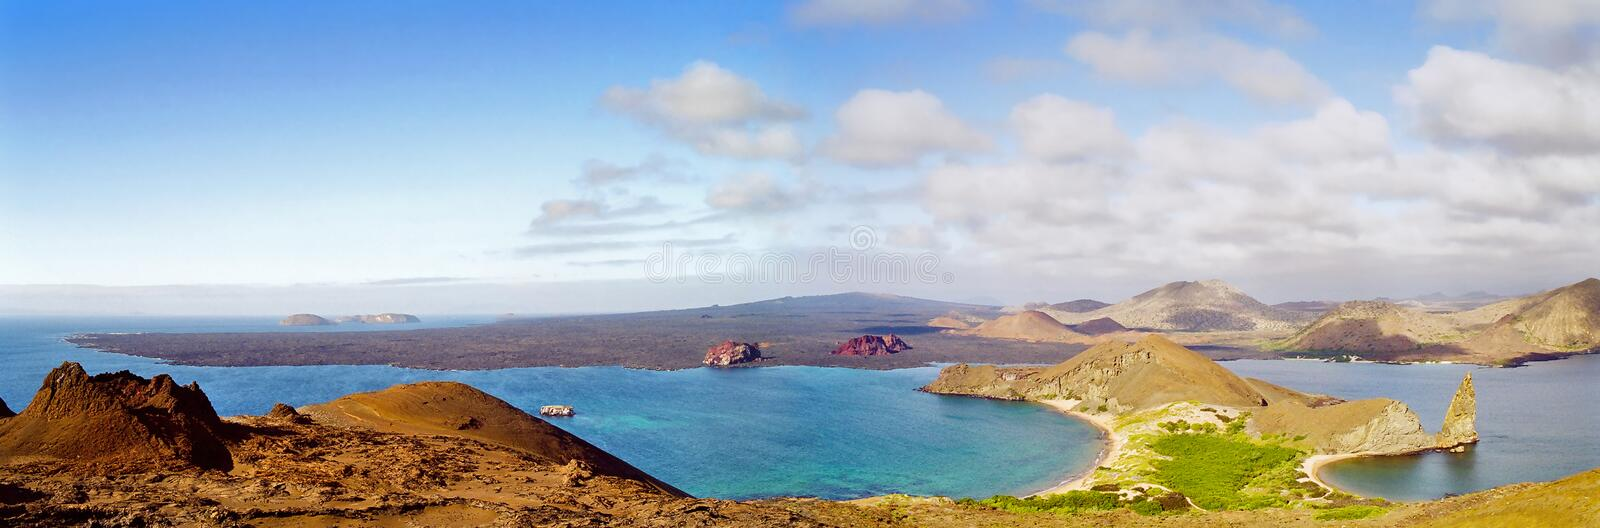 Download Galapagos Islands panorama stock image. Image of animals - 12906755